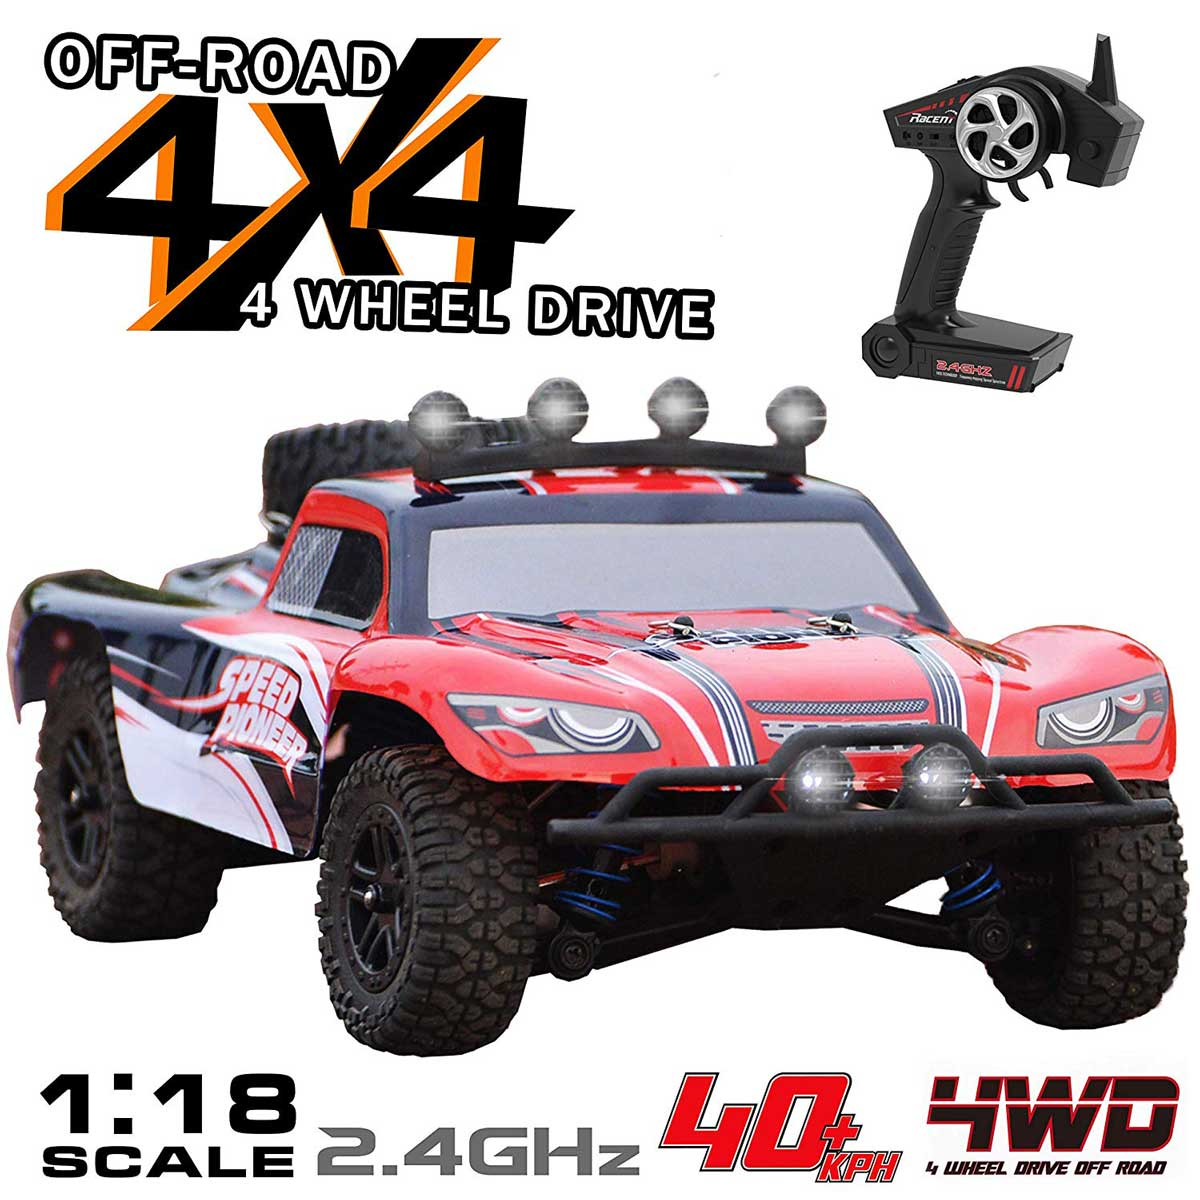 Short Course 30mph High Speed Truck with Shock Absorber System and Water-Splash-Proof Structure (785-2) RTR Cars